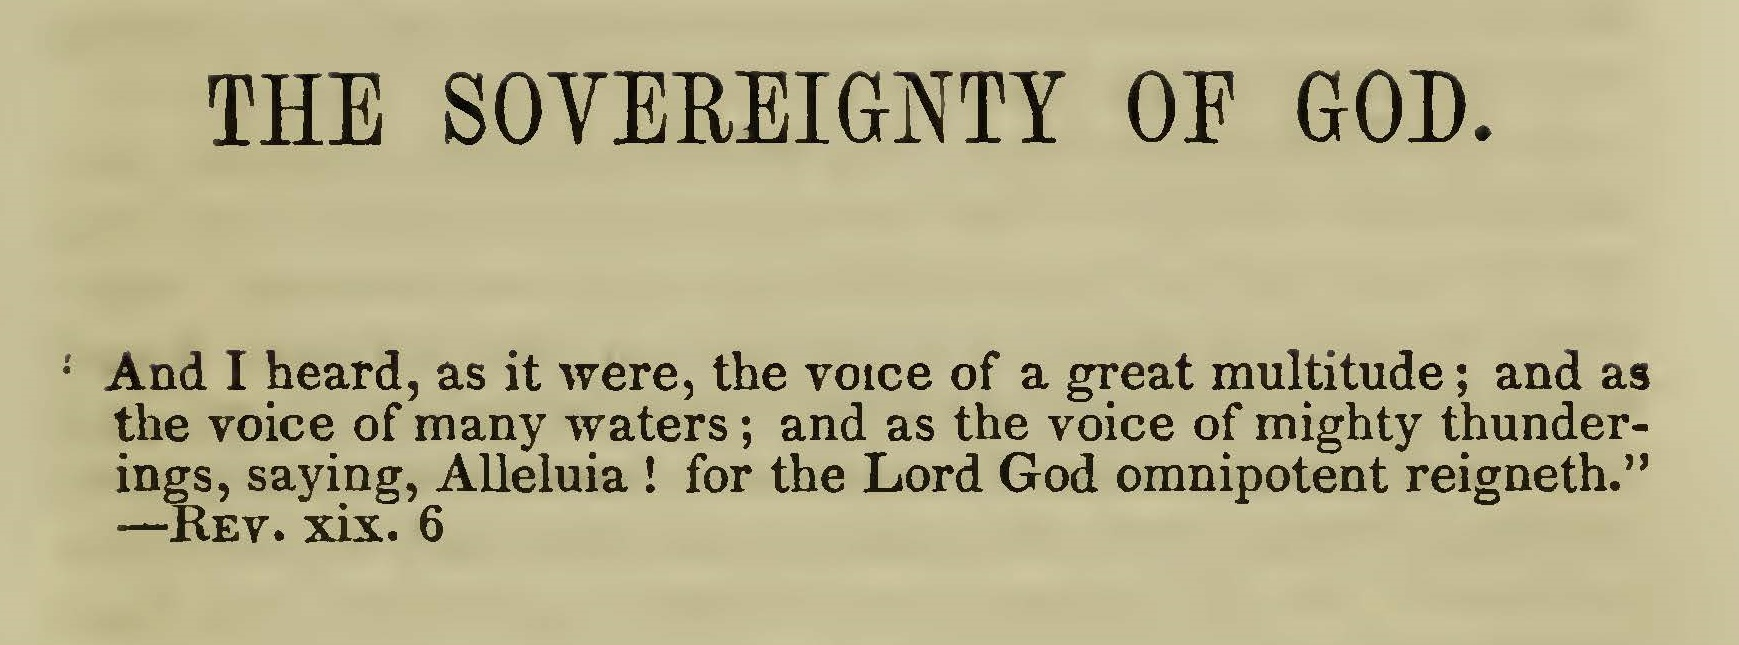 Baker, Daniel, The Sovereignty of God Explained and Vindicated Title Page.jpg